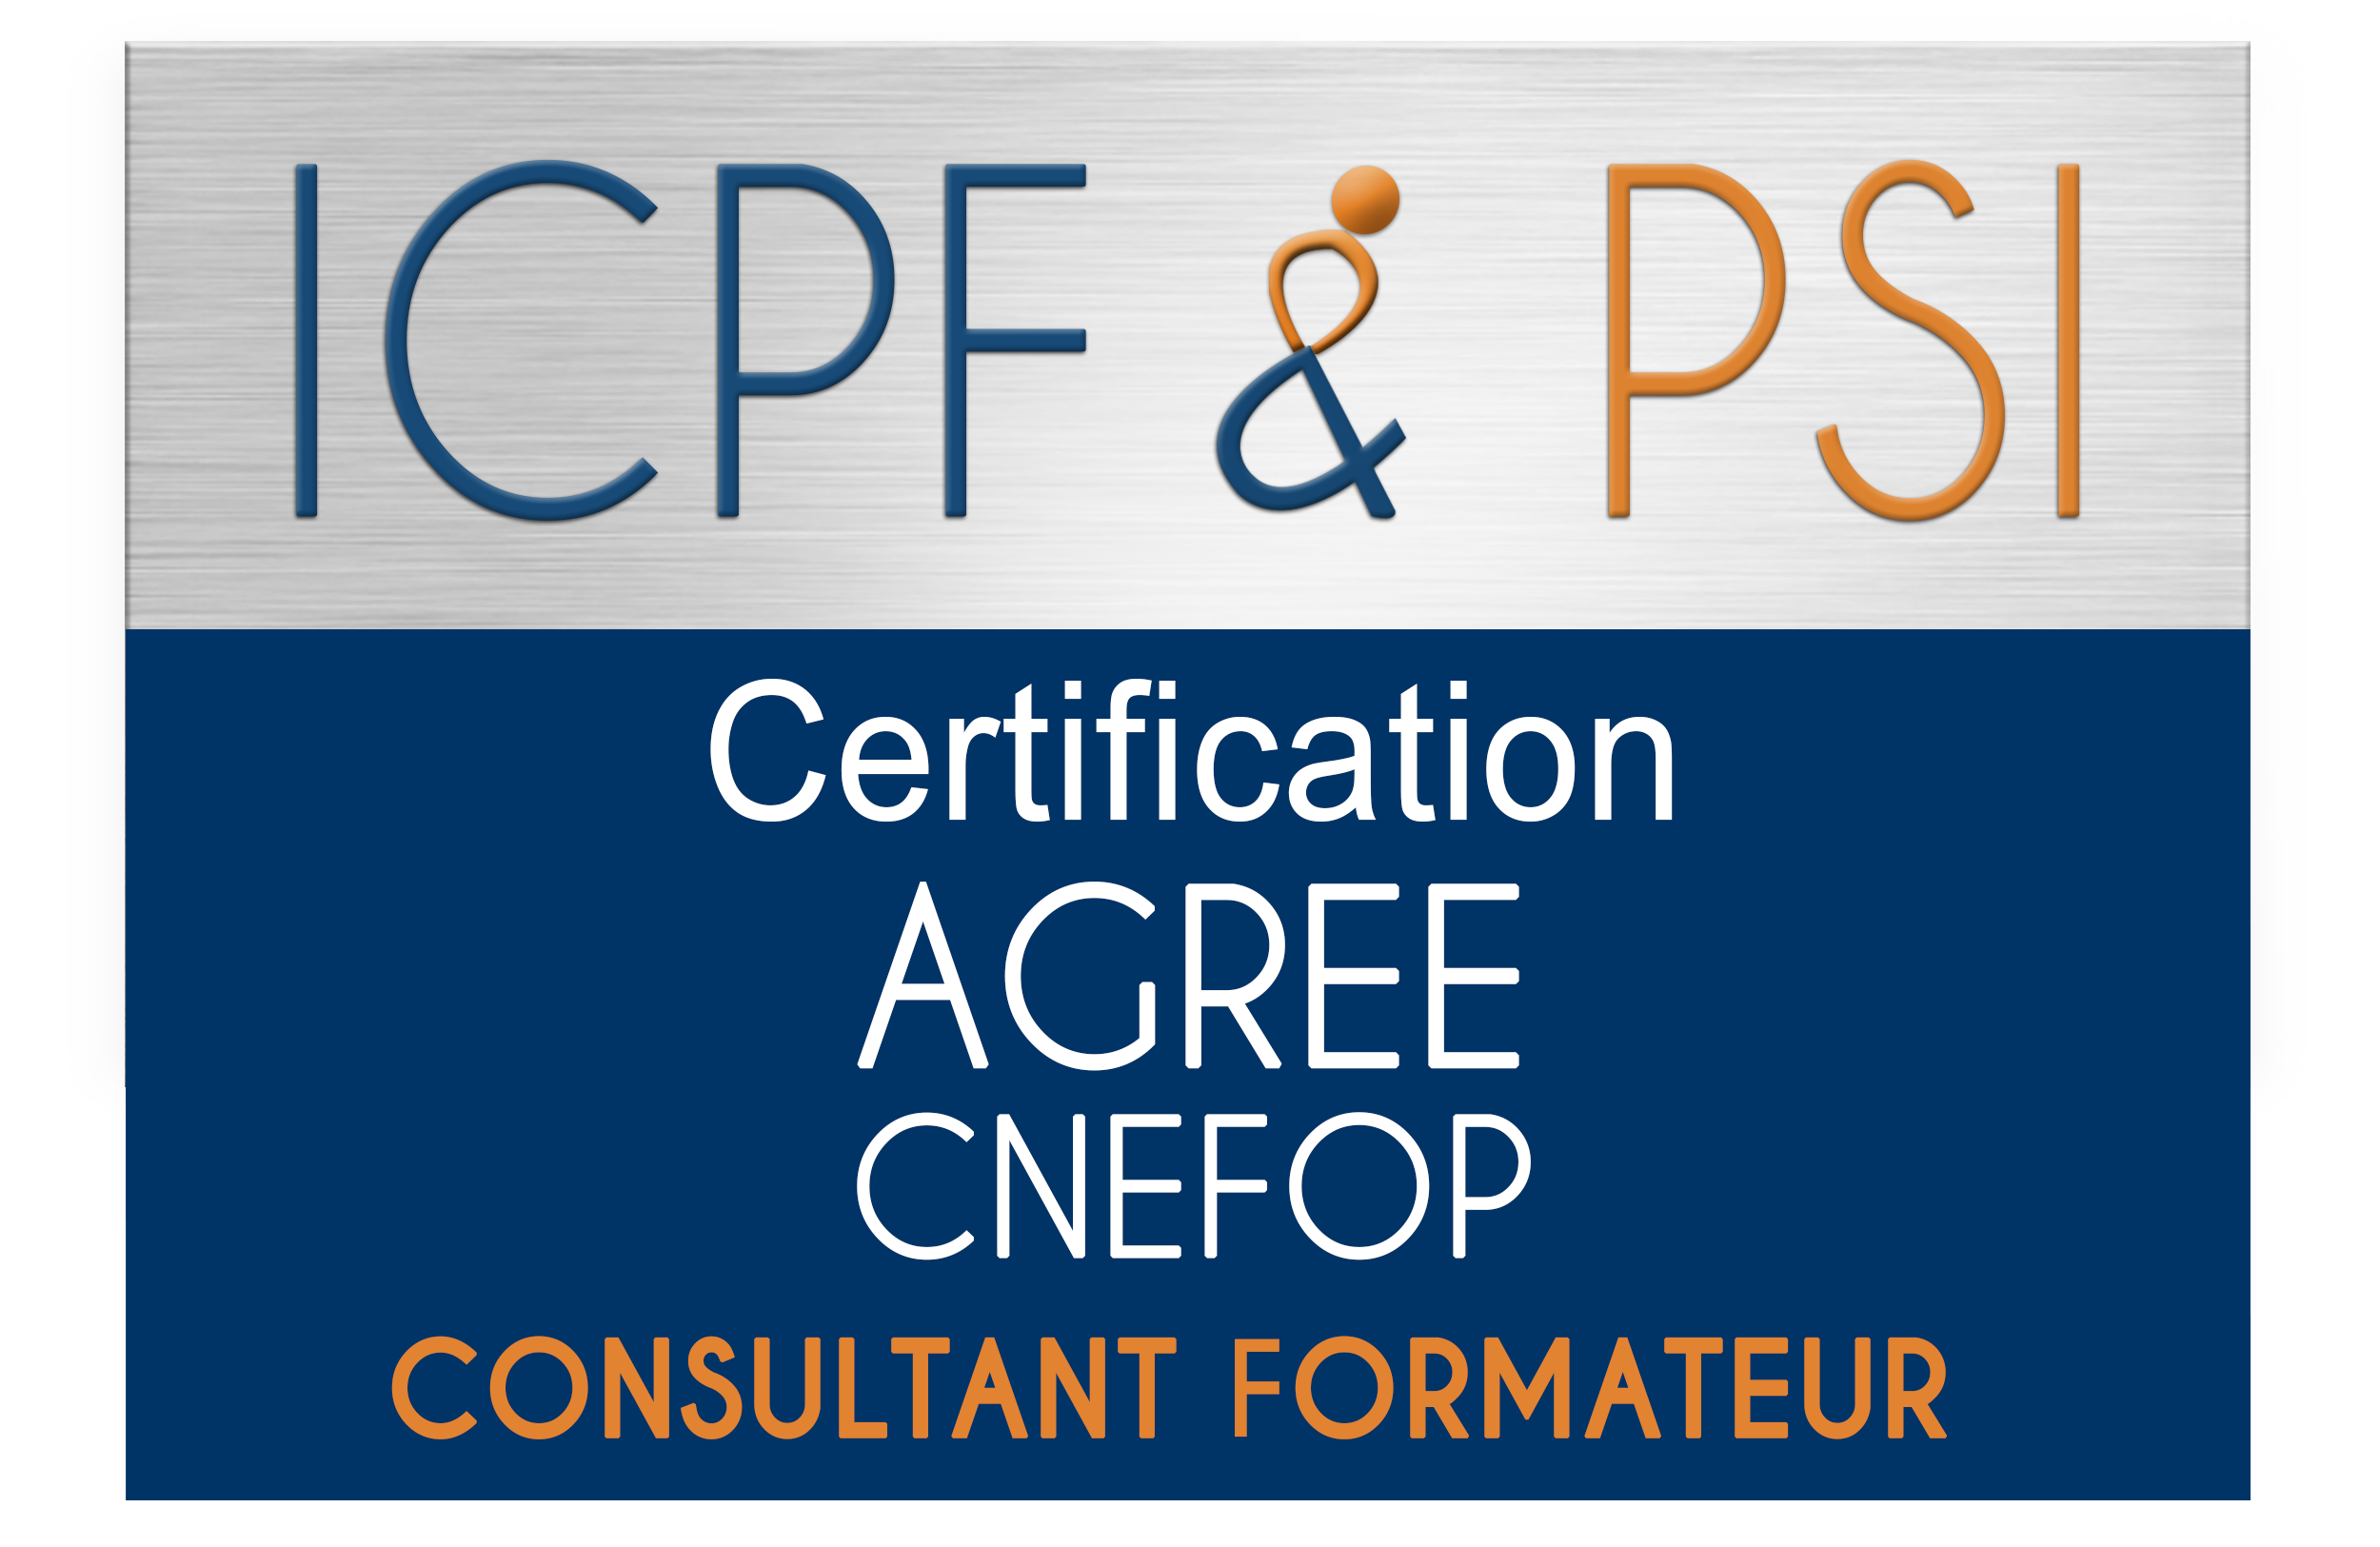 certification ICPF PSI CATC